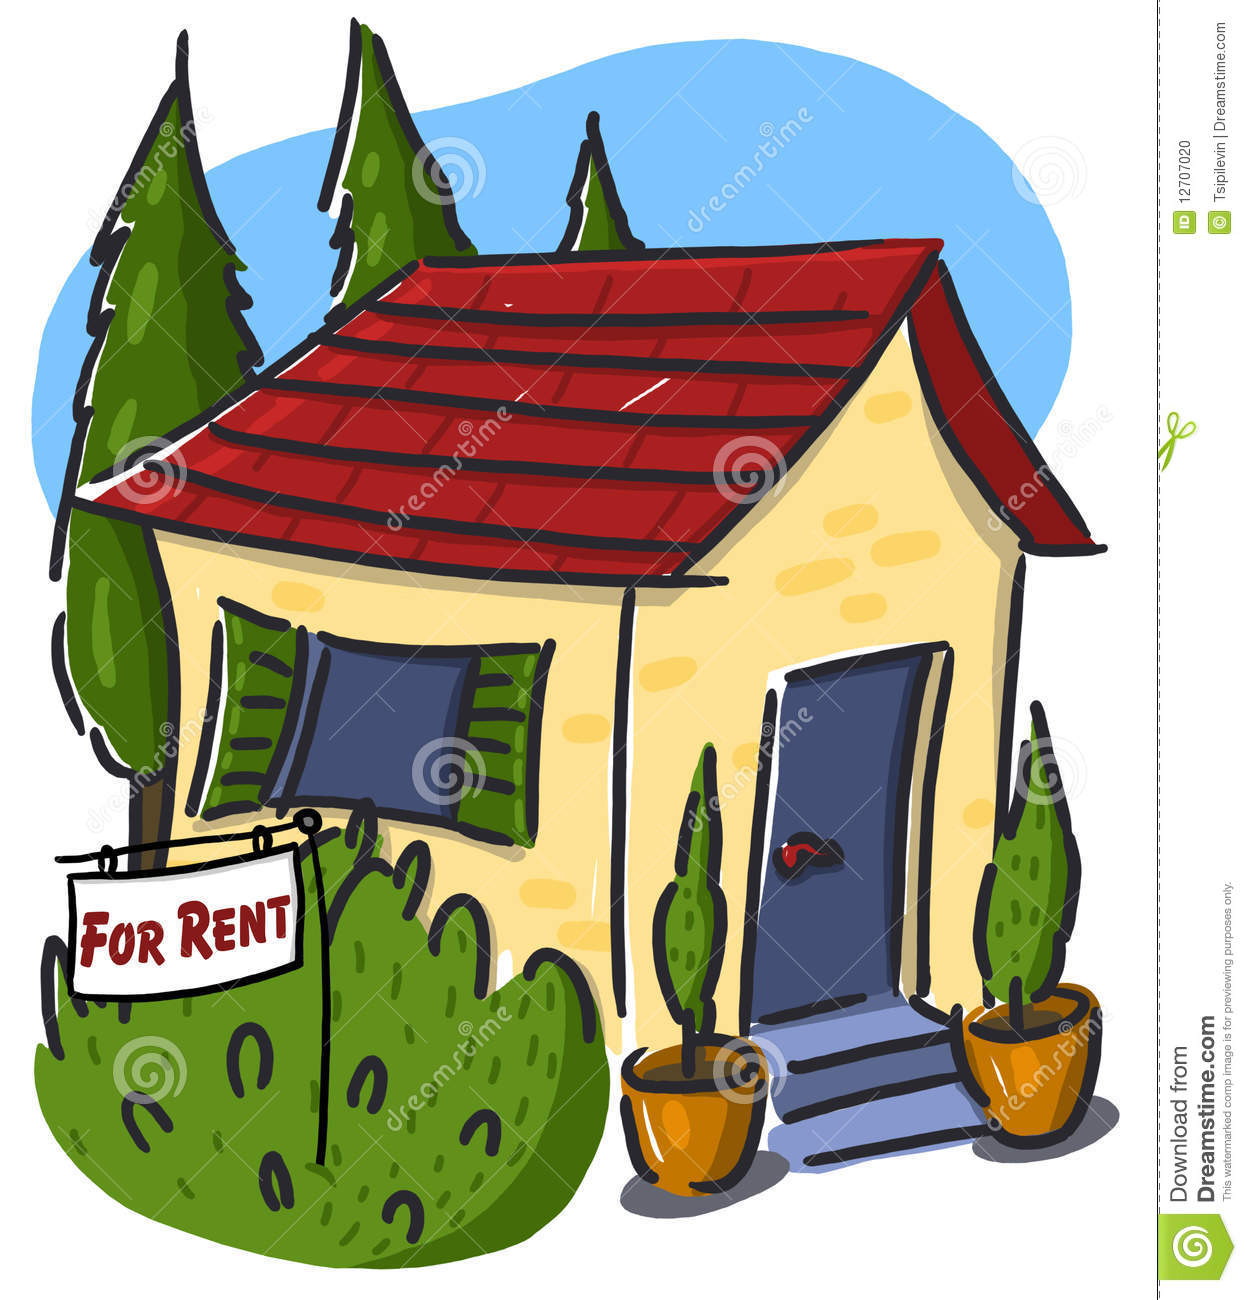 House For Rent Illustration Stock Photo.